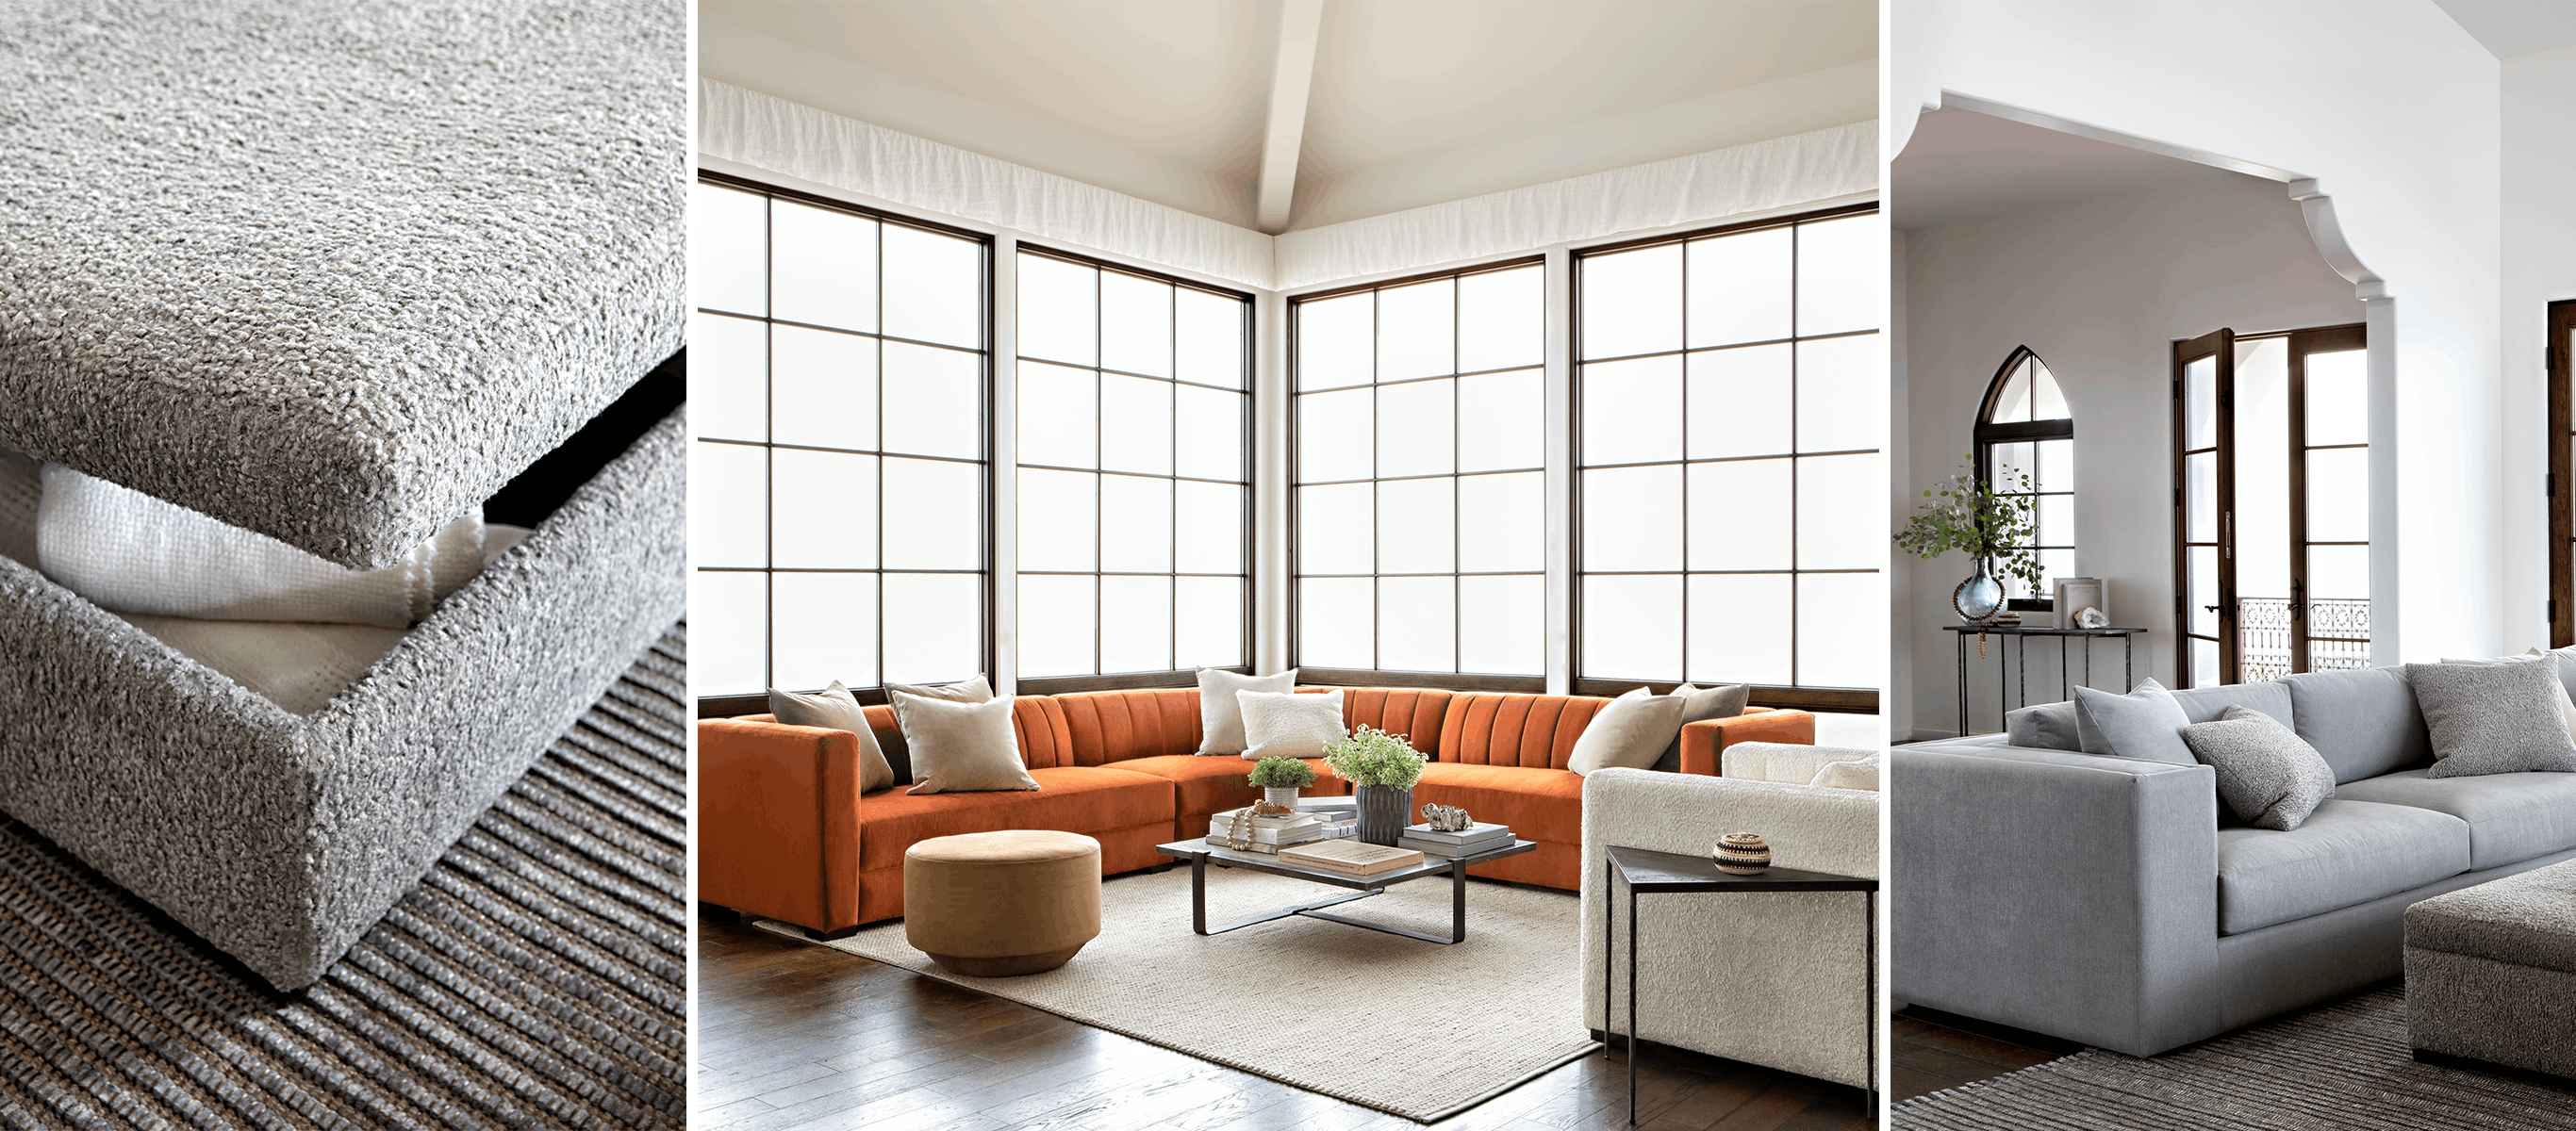 Nate Berkus Just Launched A Home Collection With Hubby Jeremiah Intended For Whitley 3 Piece Sectionals By Nate Berkus And Jeremiah Brent (Image 12 of 25)